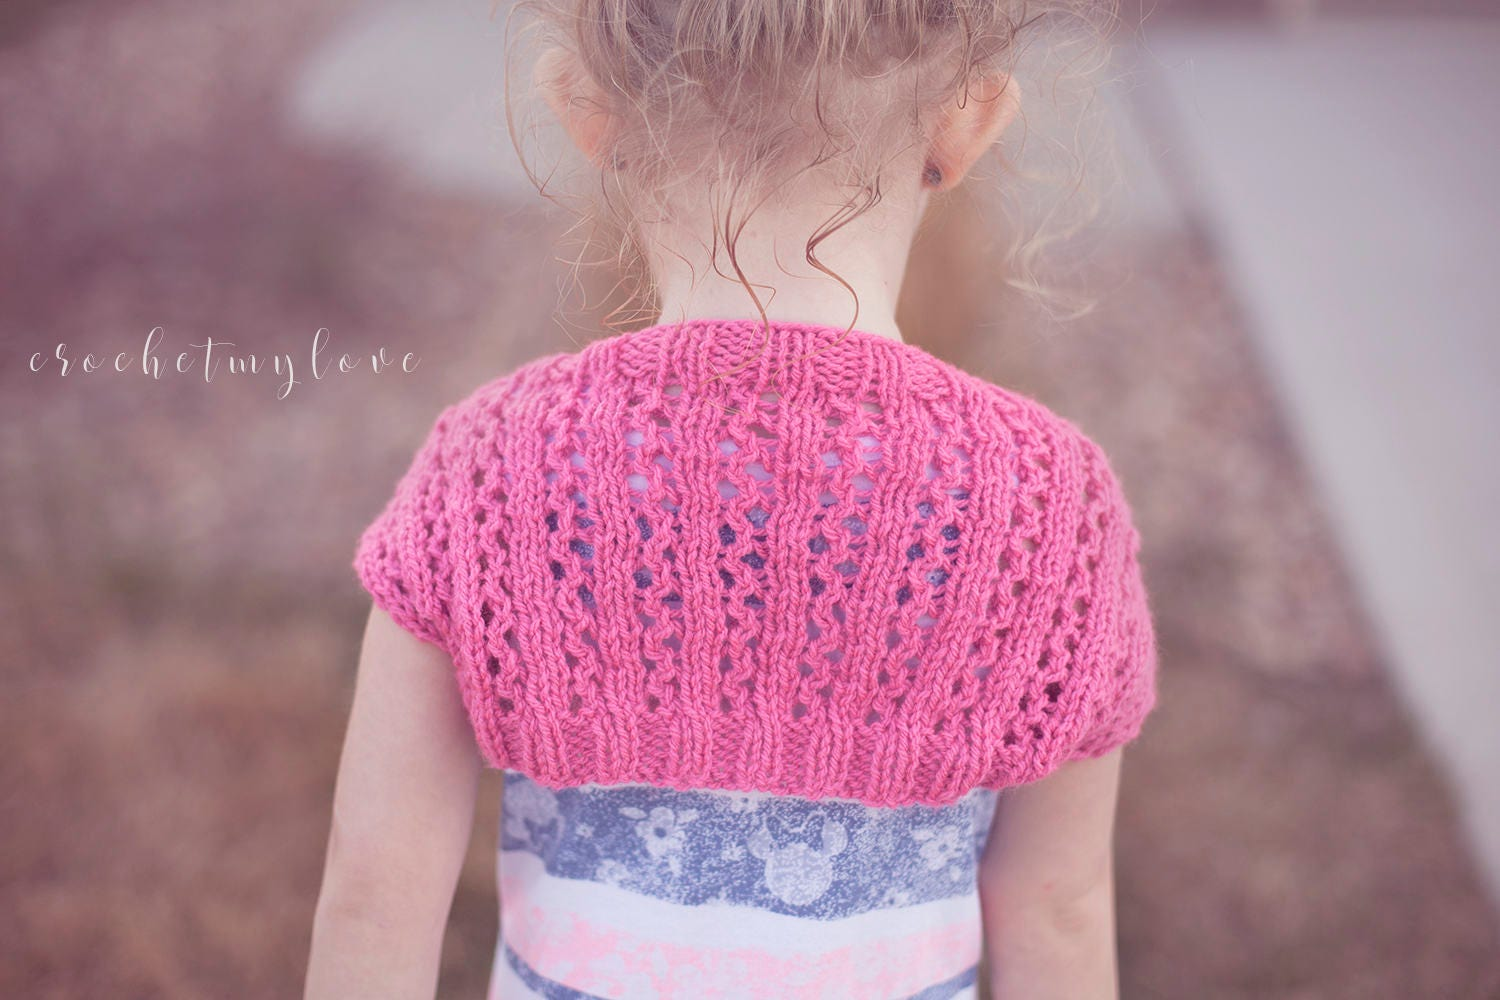 Shrug knitting pattern knitting patterns bolero knit patterns this is a digital file bankloansurffo Image collections